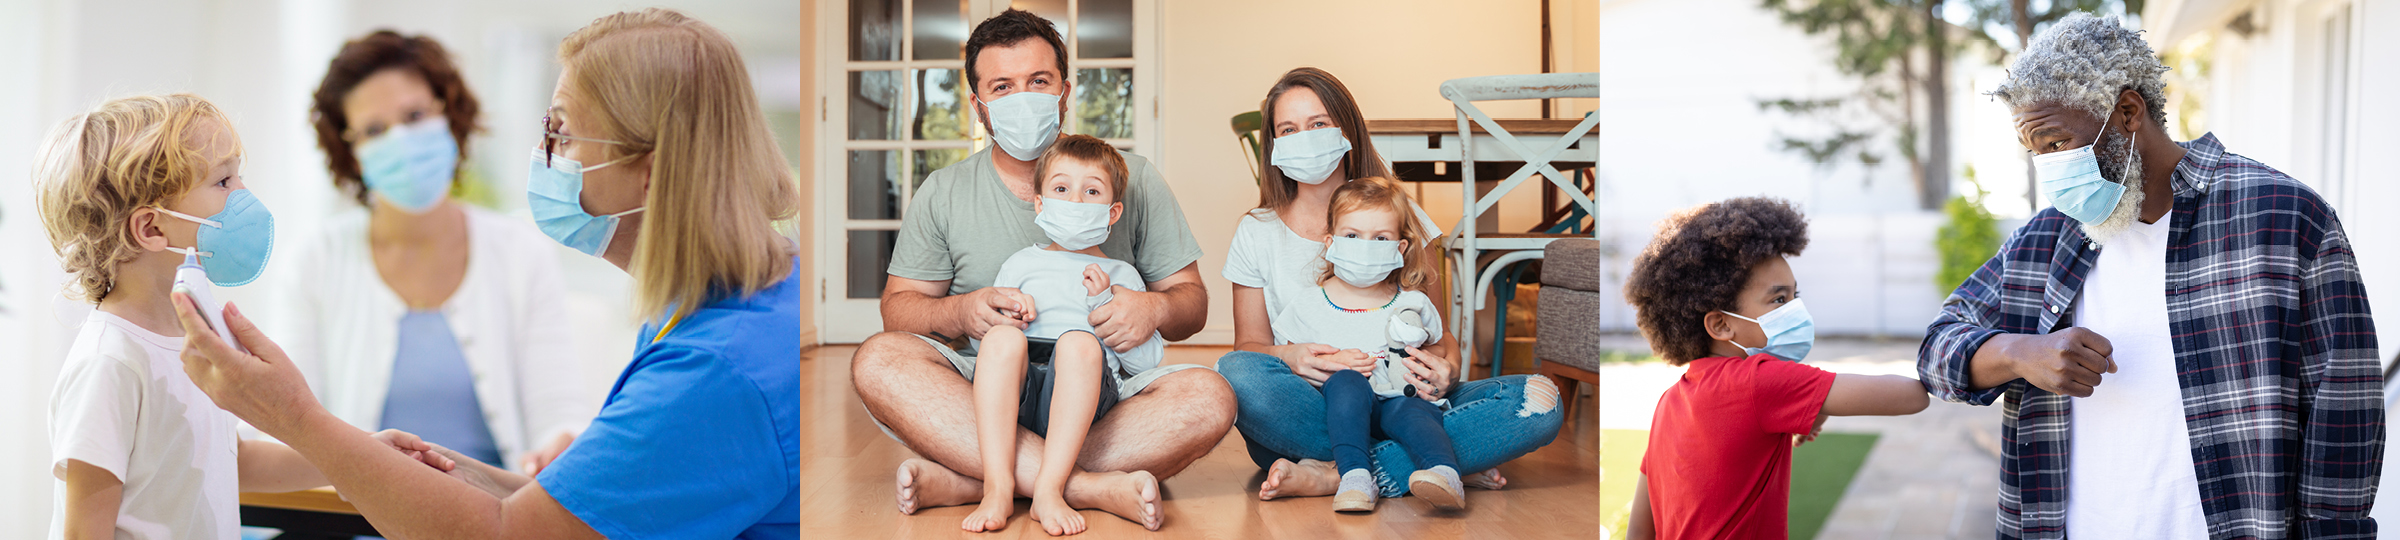 Families in Masks COVID-19 RT-PCR Testing